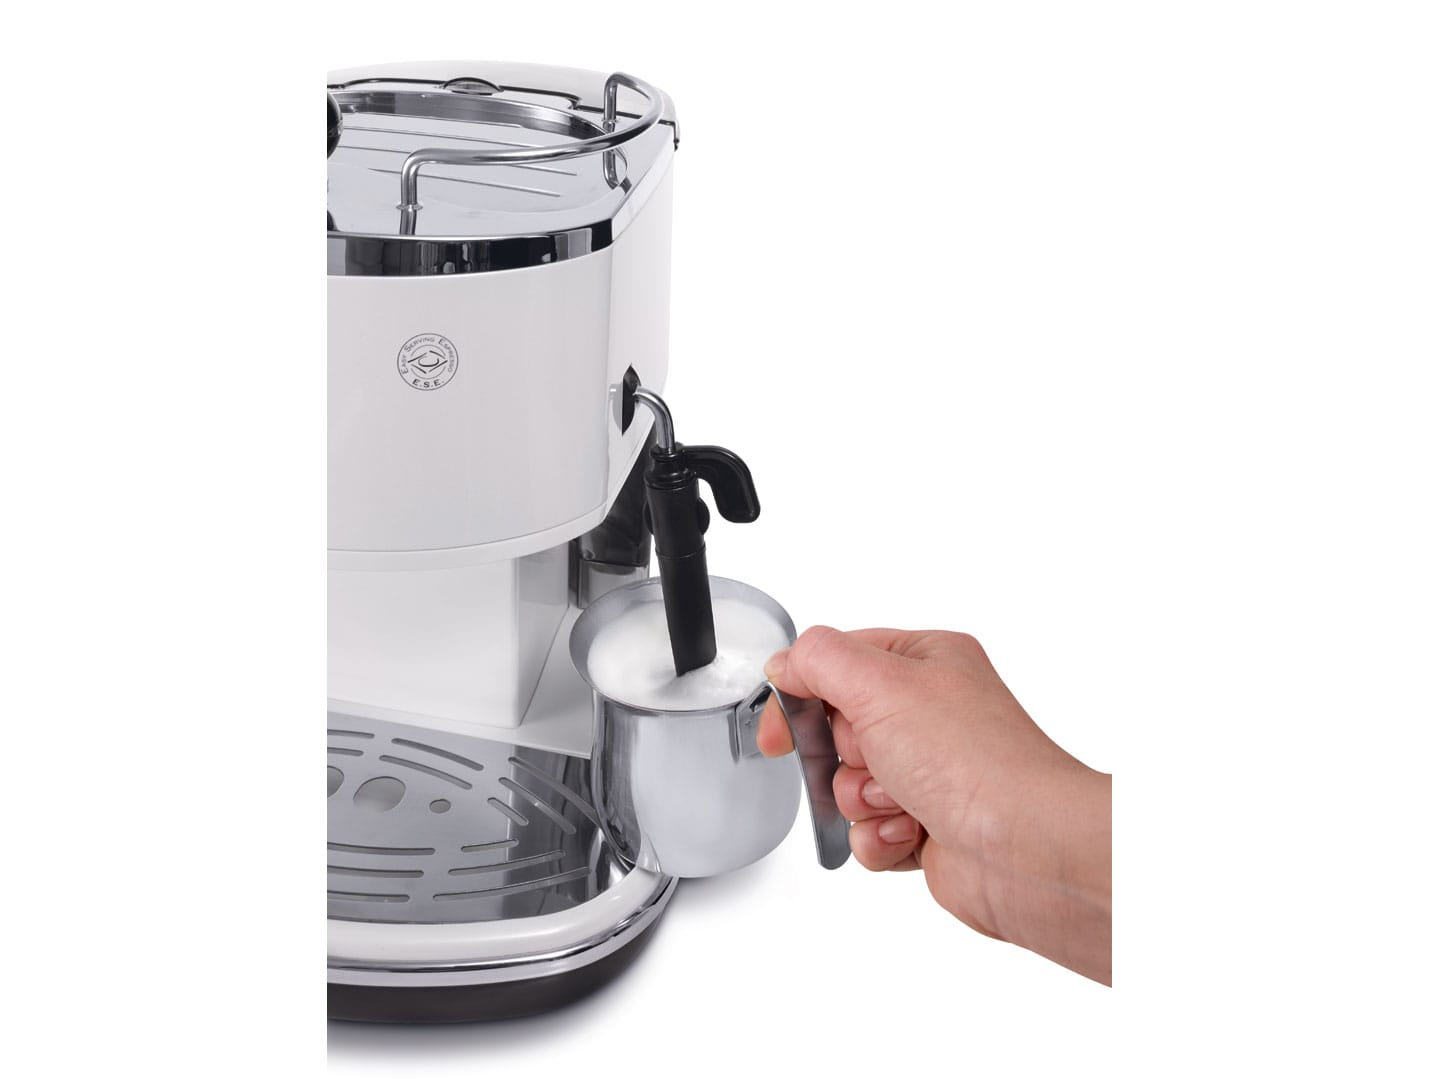 Icona Pump Espresso ECO310W - White  coffee machine with cup warmer by delonghi australia